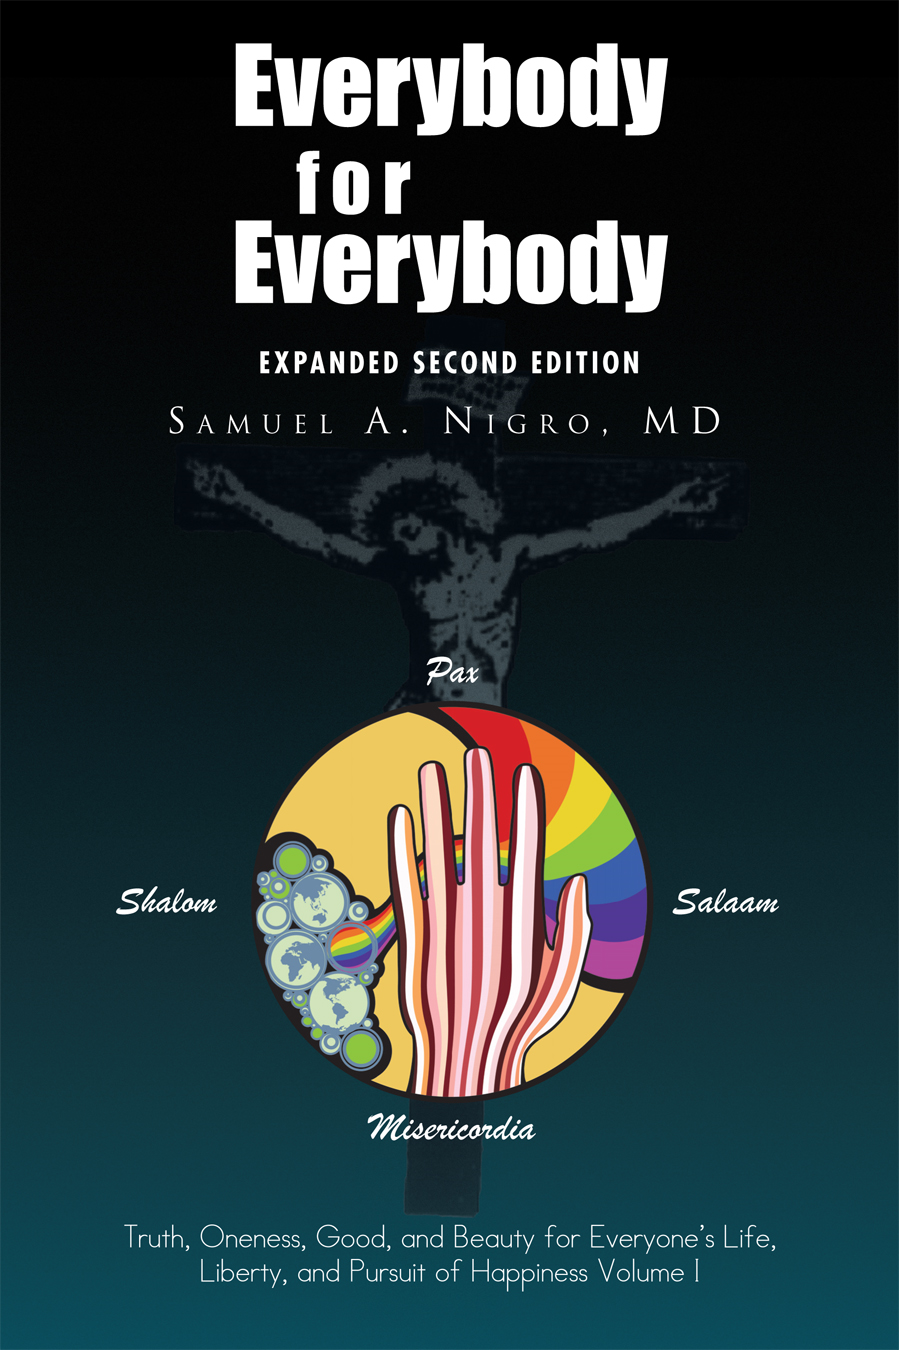 Everybody for Everybody: Truth, Oneness, Good, and Beauty for Everyone's Life, Liberty, and Pursuit of Happiness Volume I